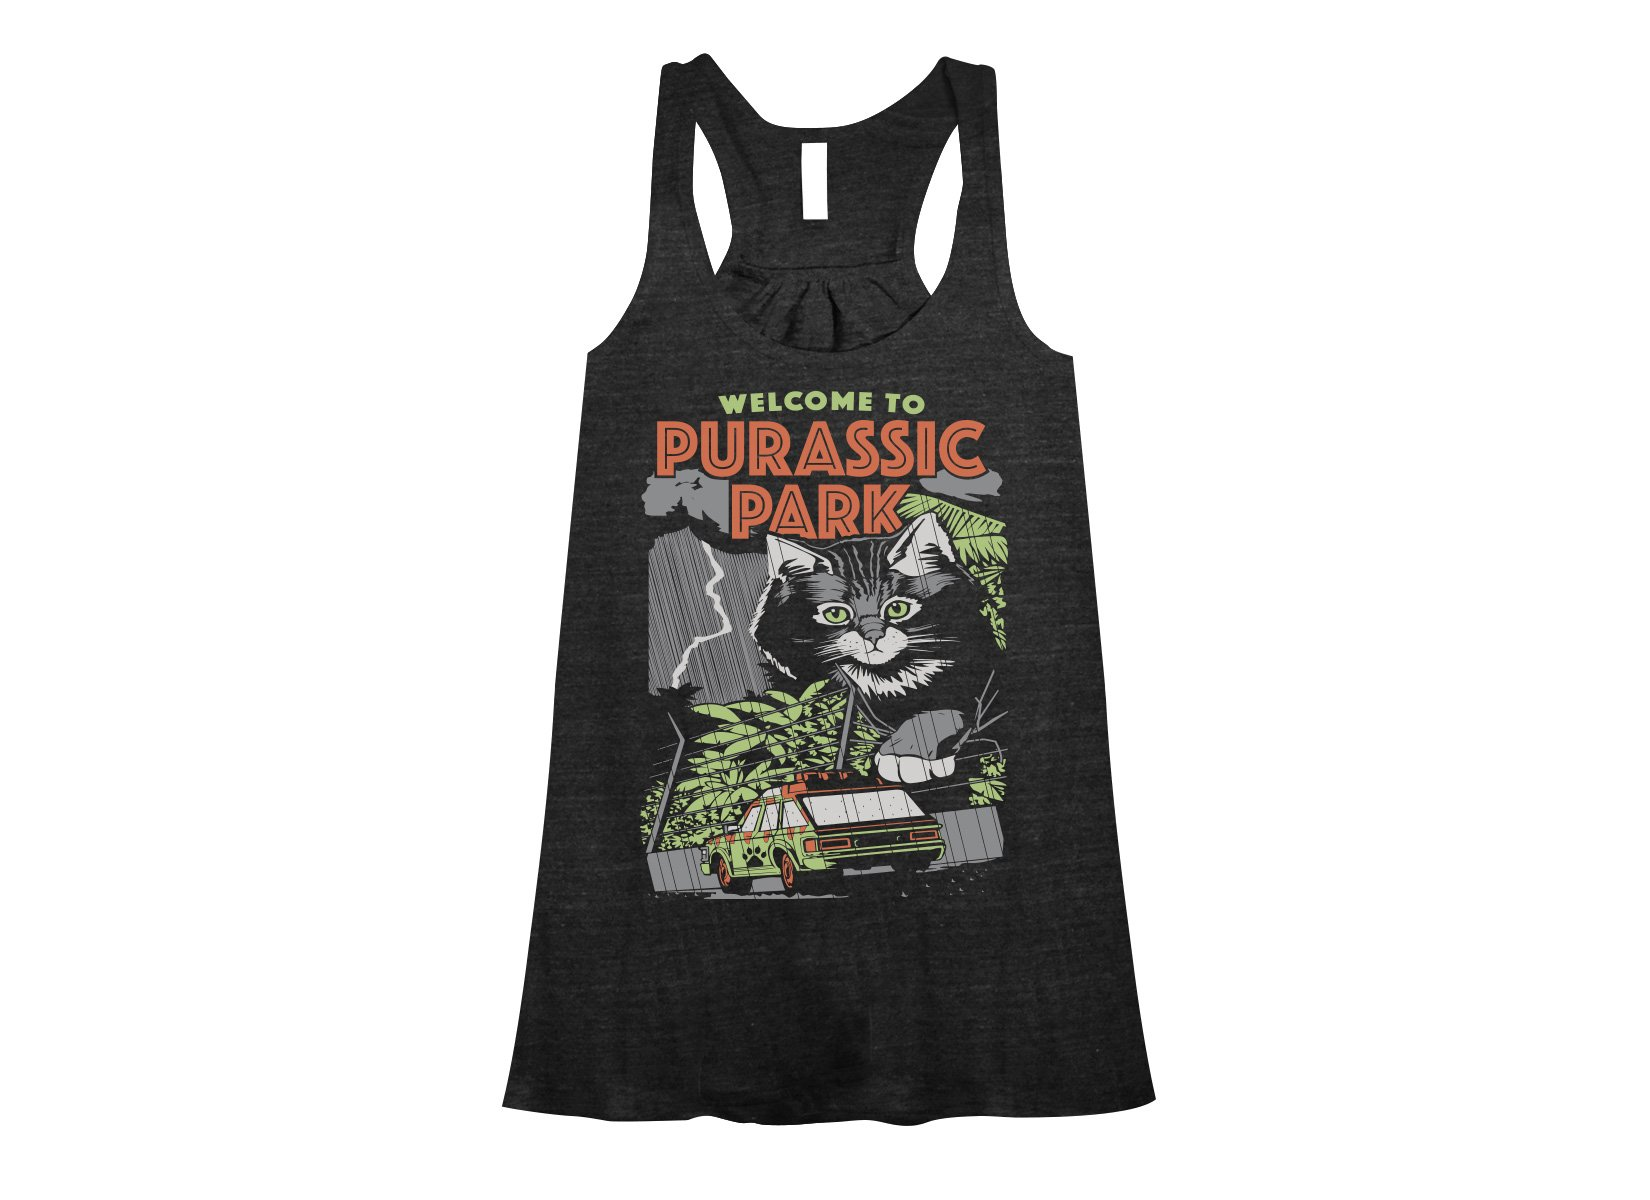 Purassic Park on Womens Tanks T-Shirt